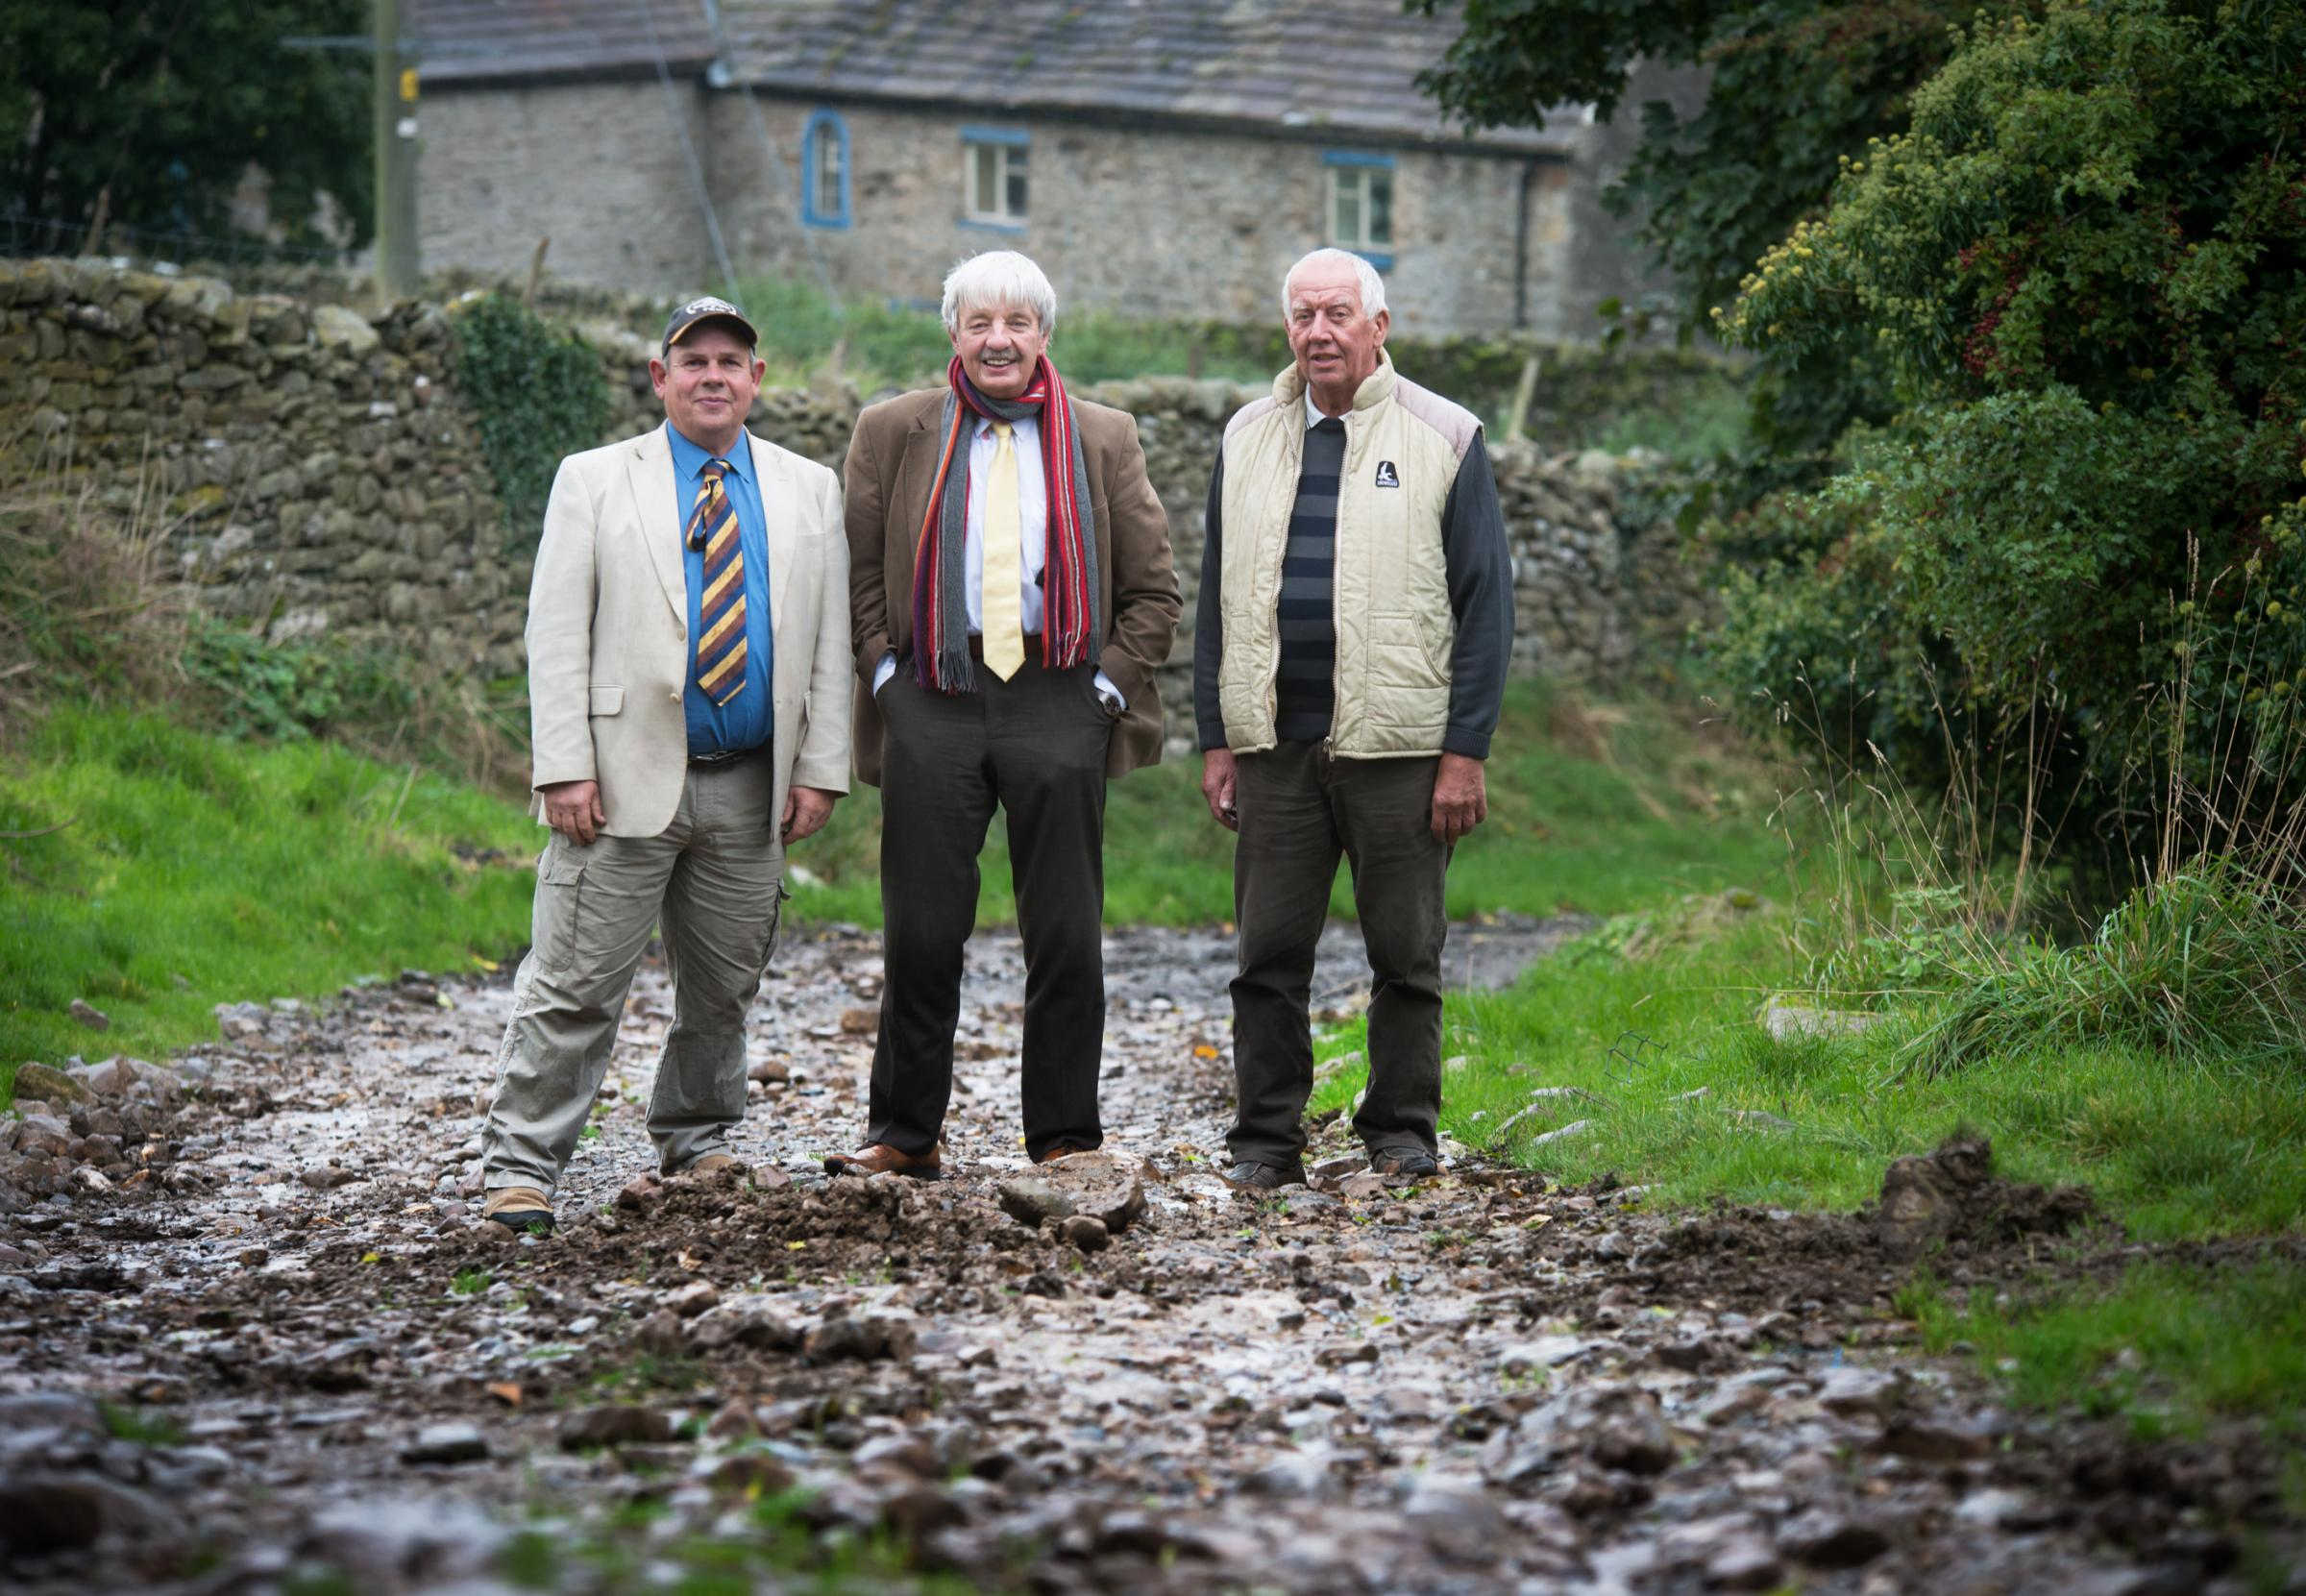 Coun Blackie is pictured with Coun Mathew Wilkes (right)  and Coun Brian McGregor (left), chairman of Aysgarth and District Parish Council